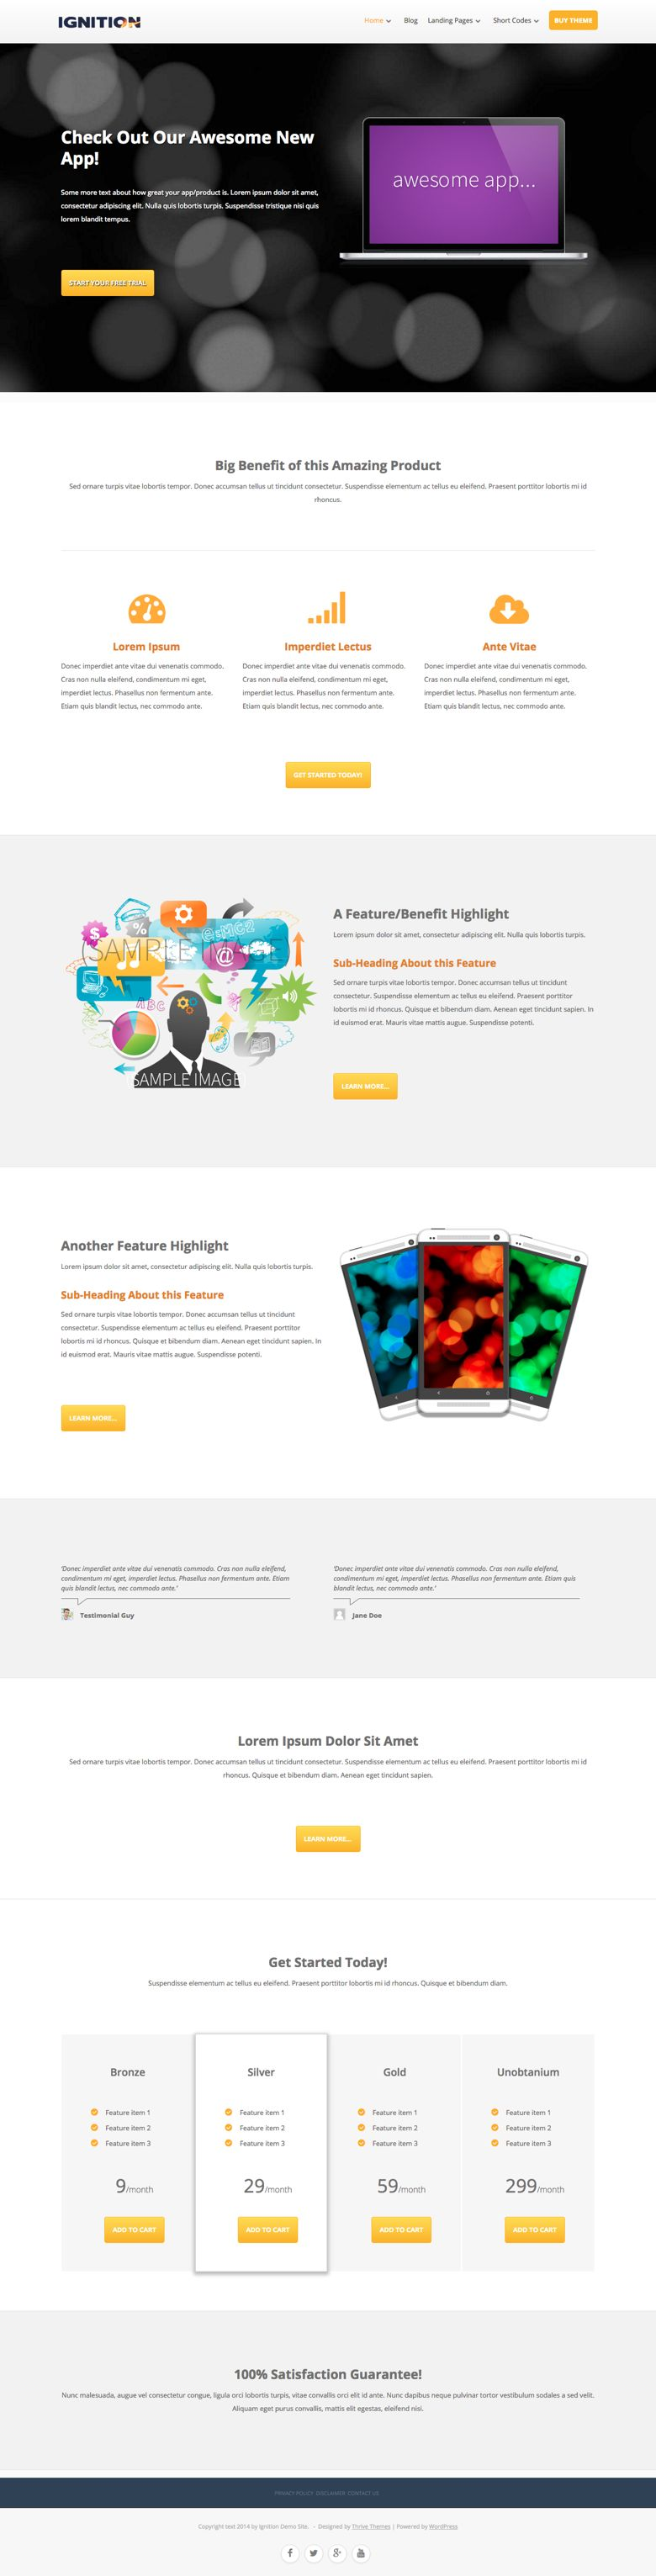 Ignition WordPress Product Marketing Page Theme